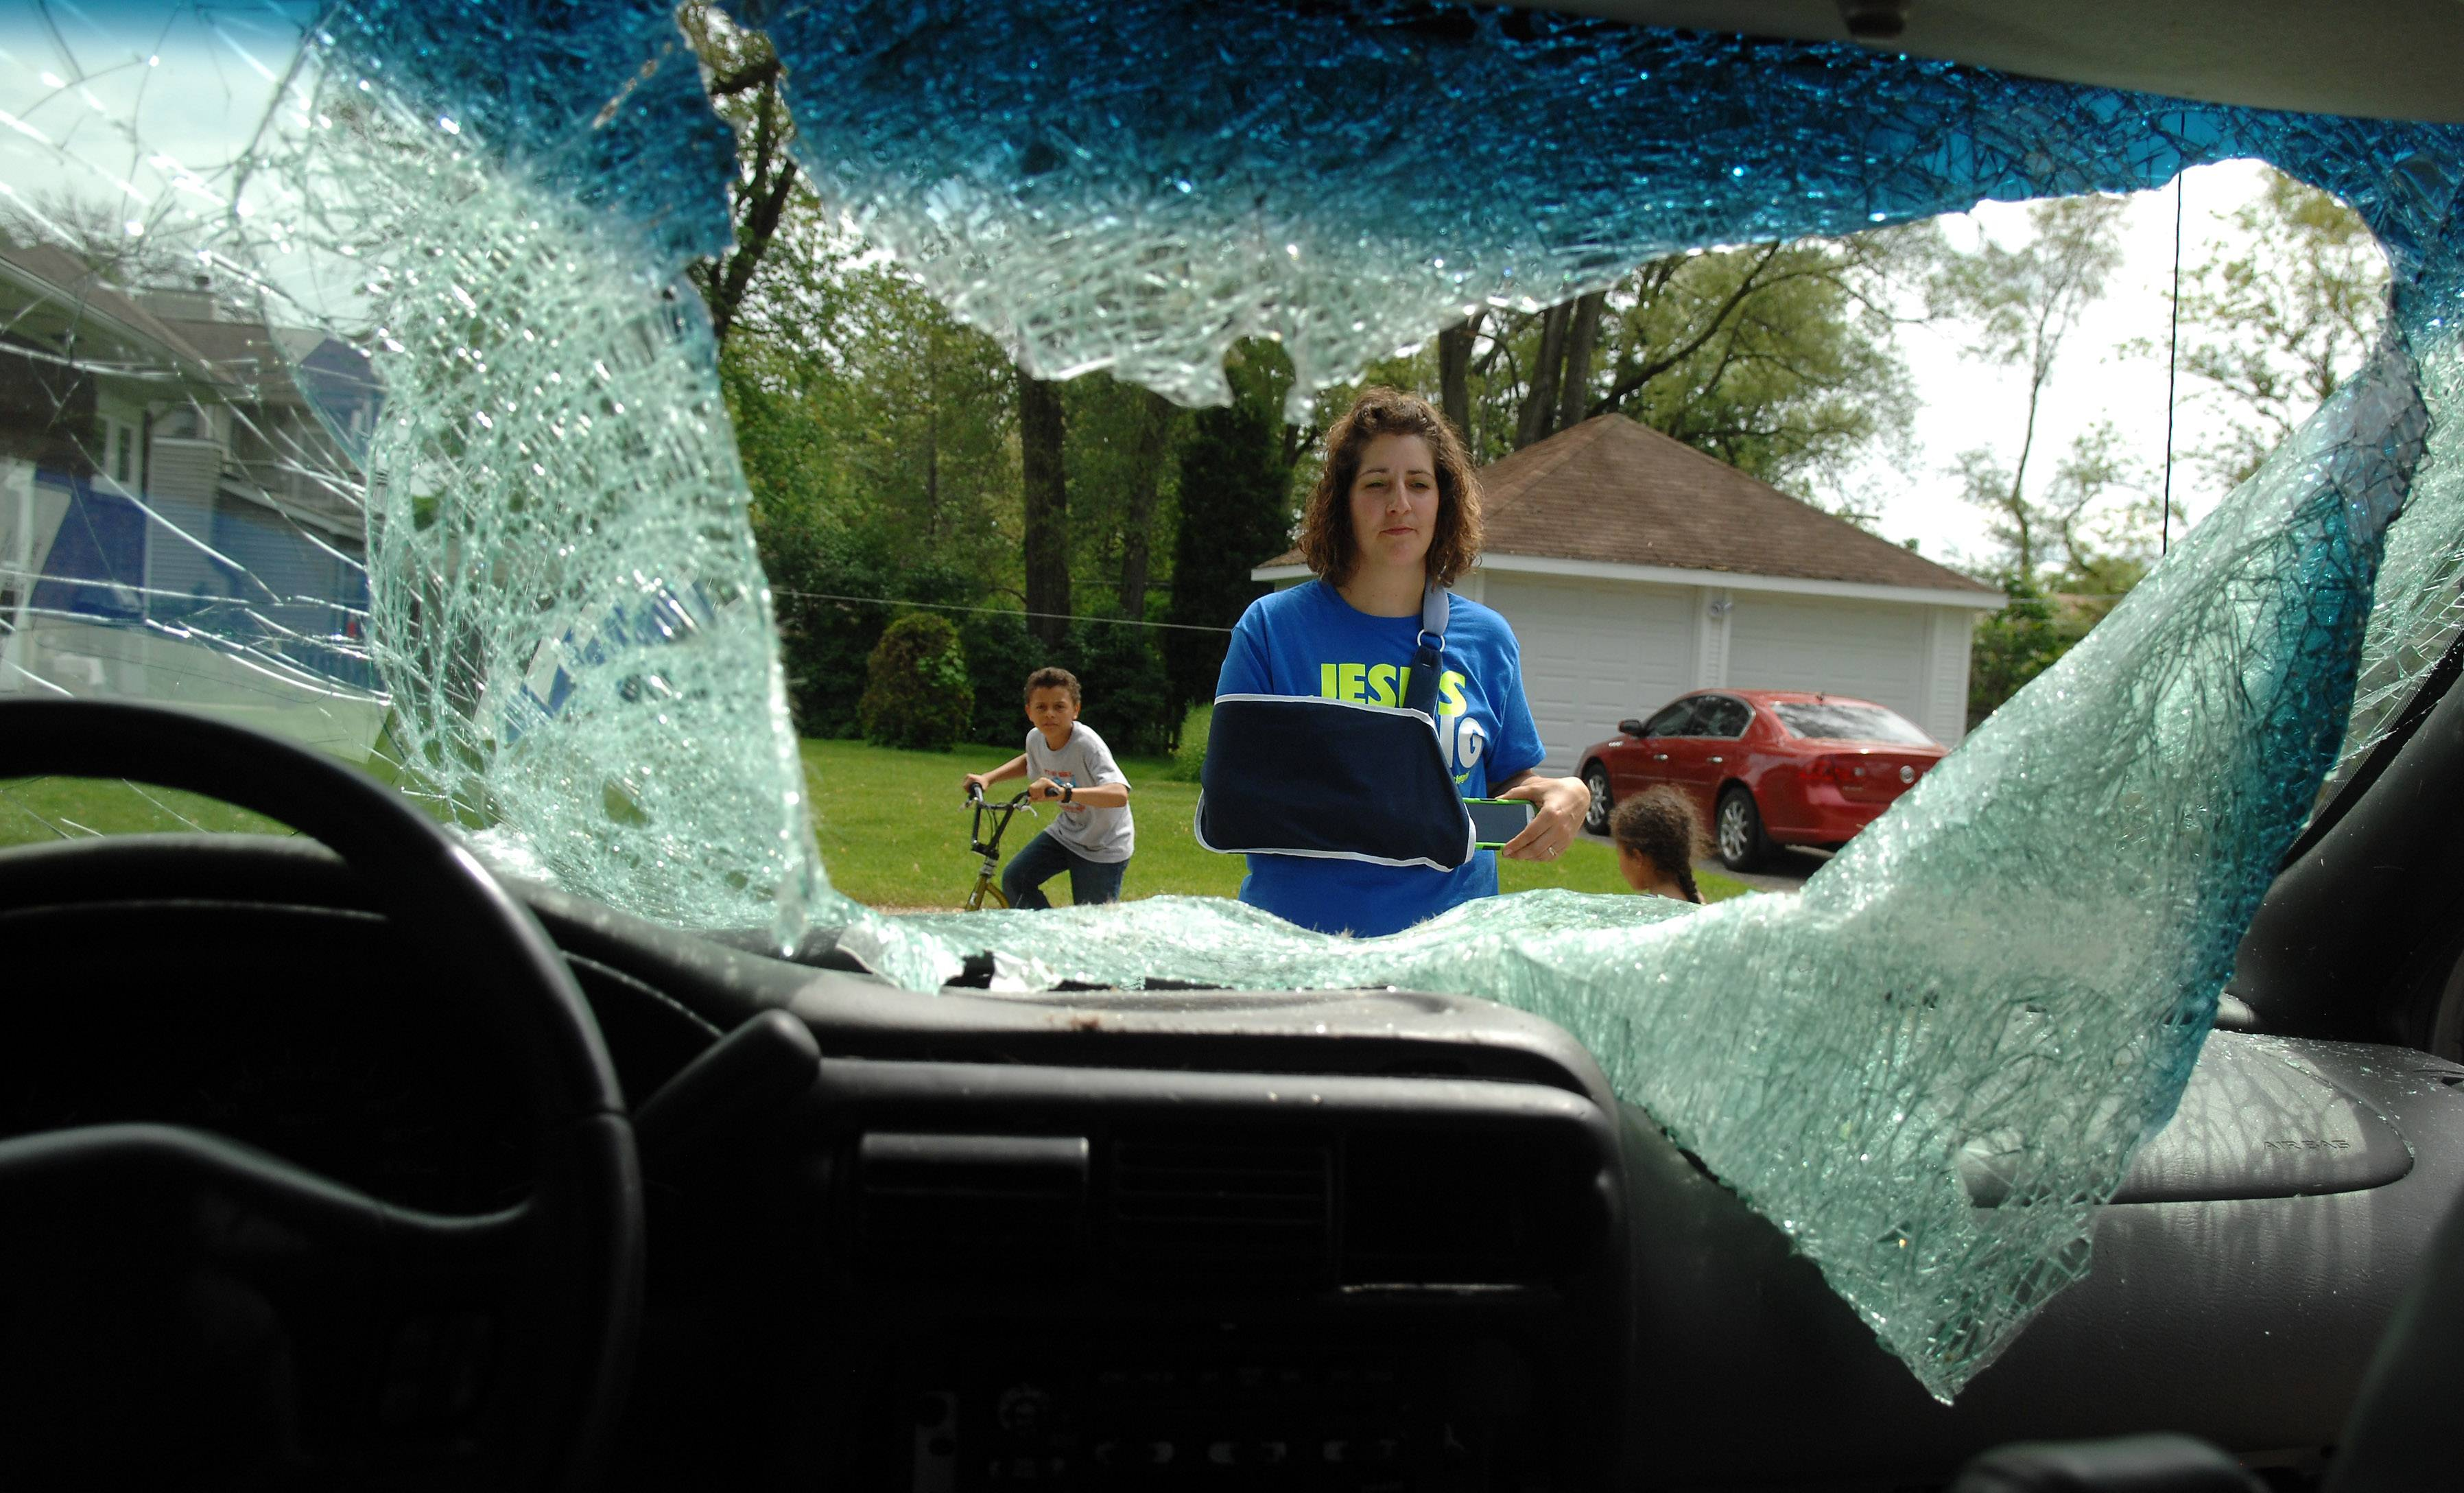 Heidi Conner of West Dundee describes how a deer jumped off an overpass and crashed through the windshield of her Chevrolet Venture minivan Sunday while driving on the Jane Addams Tollway.